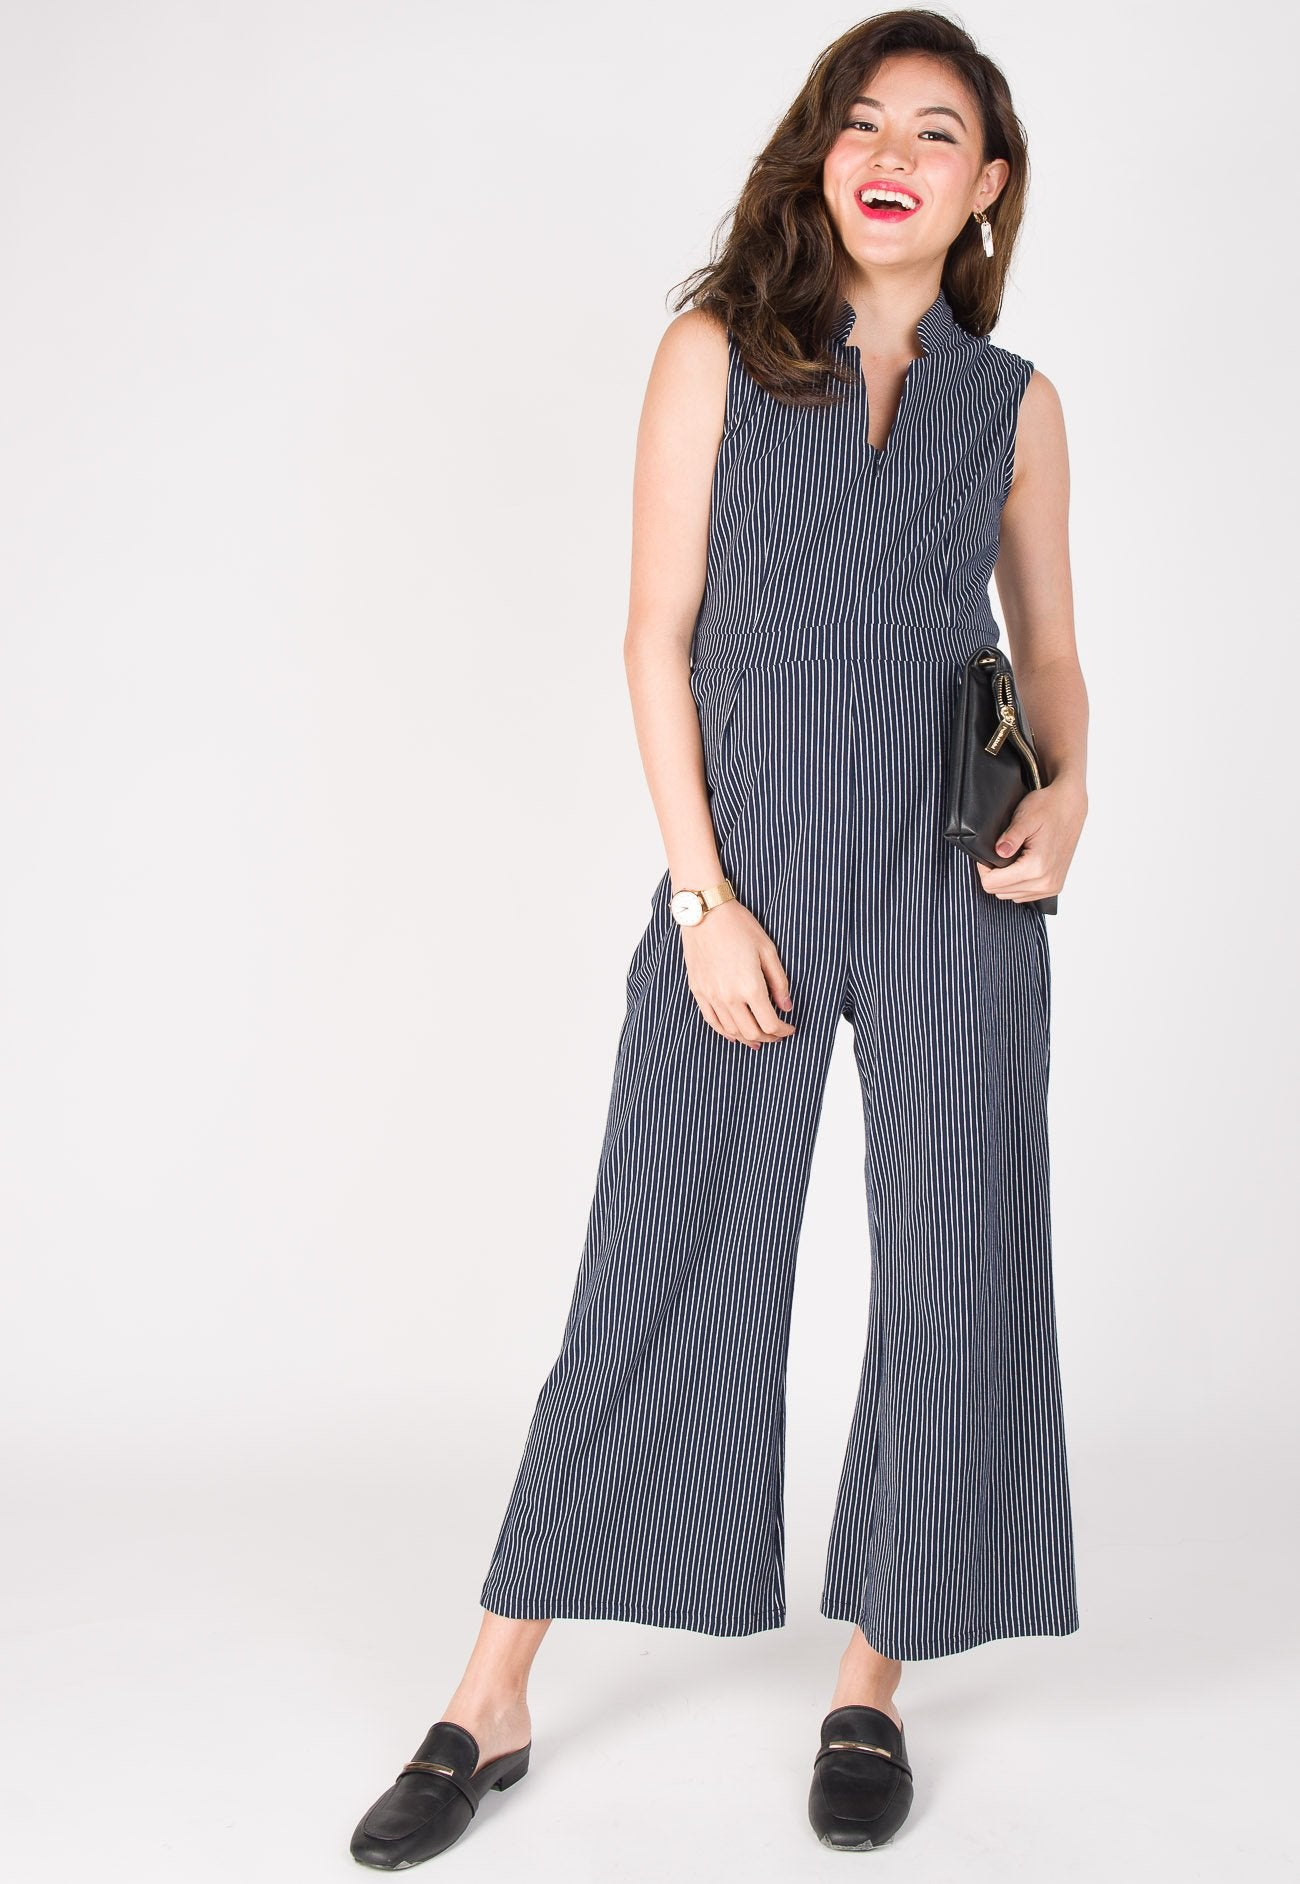 Leda Slim Fit Nursing Jumpsuit in Navy Nursing Wear Mothercot